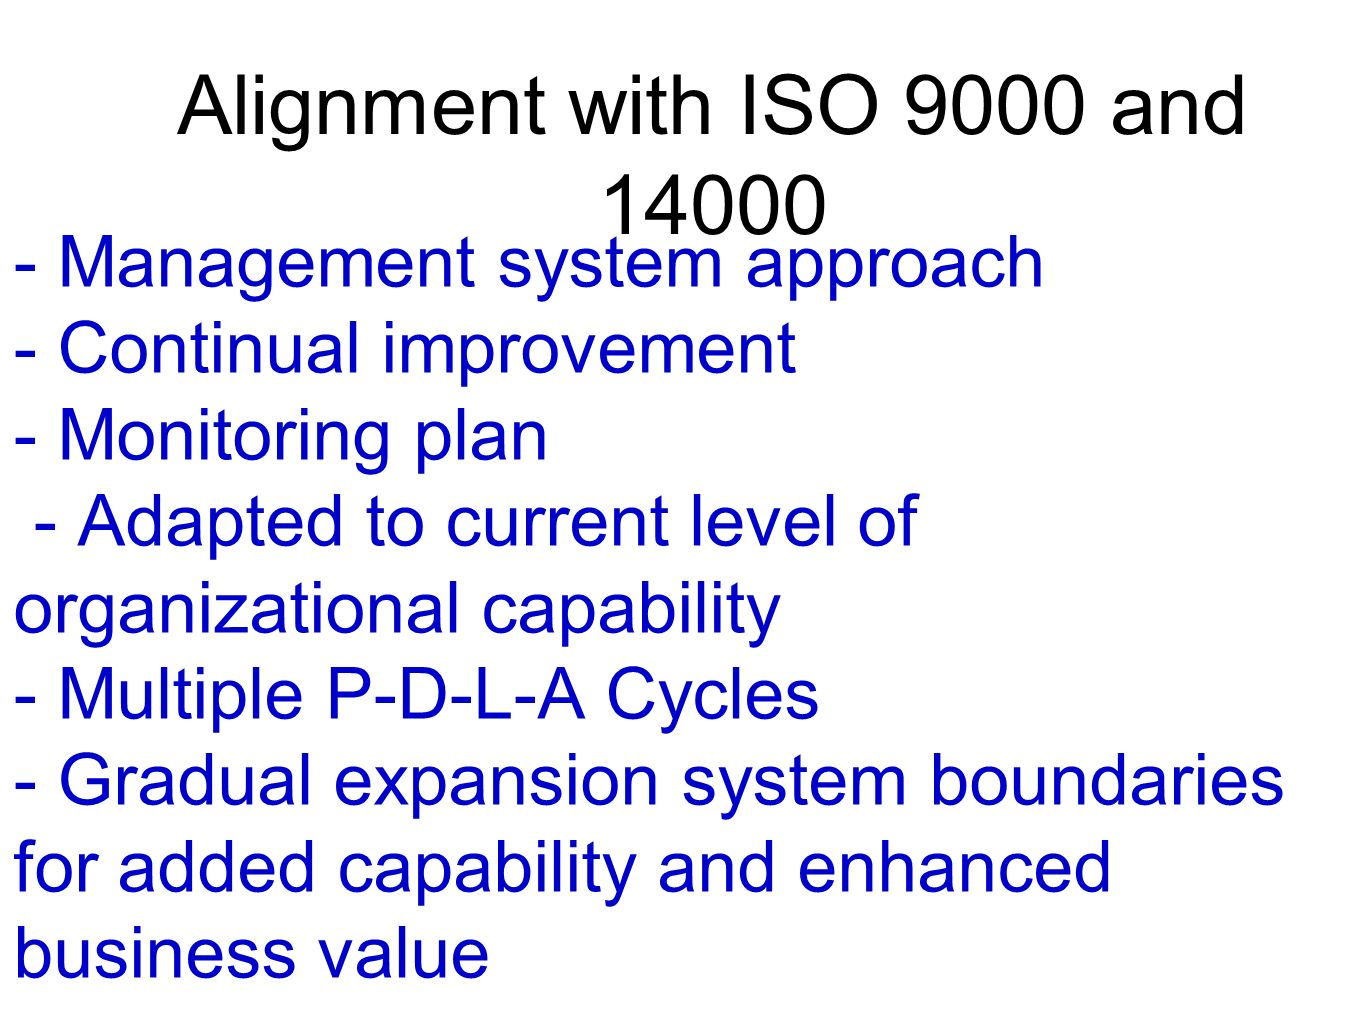 Alignment with ISO 9000 and 14000